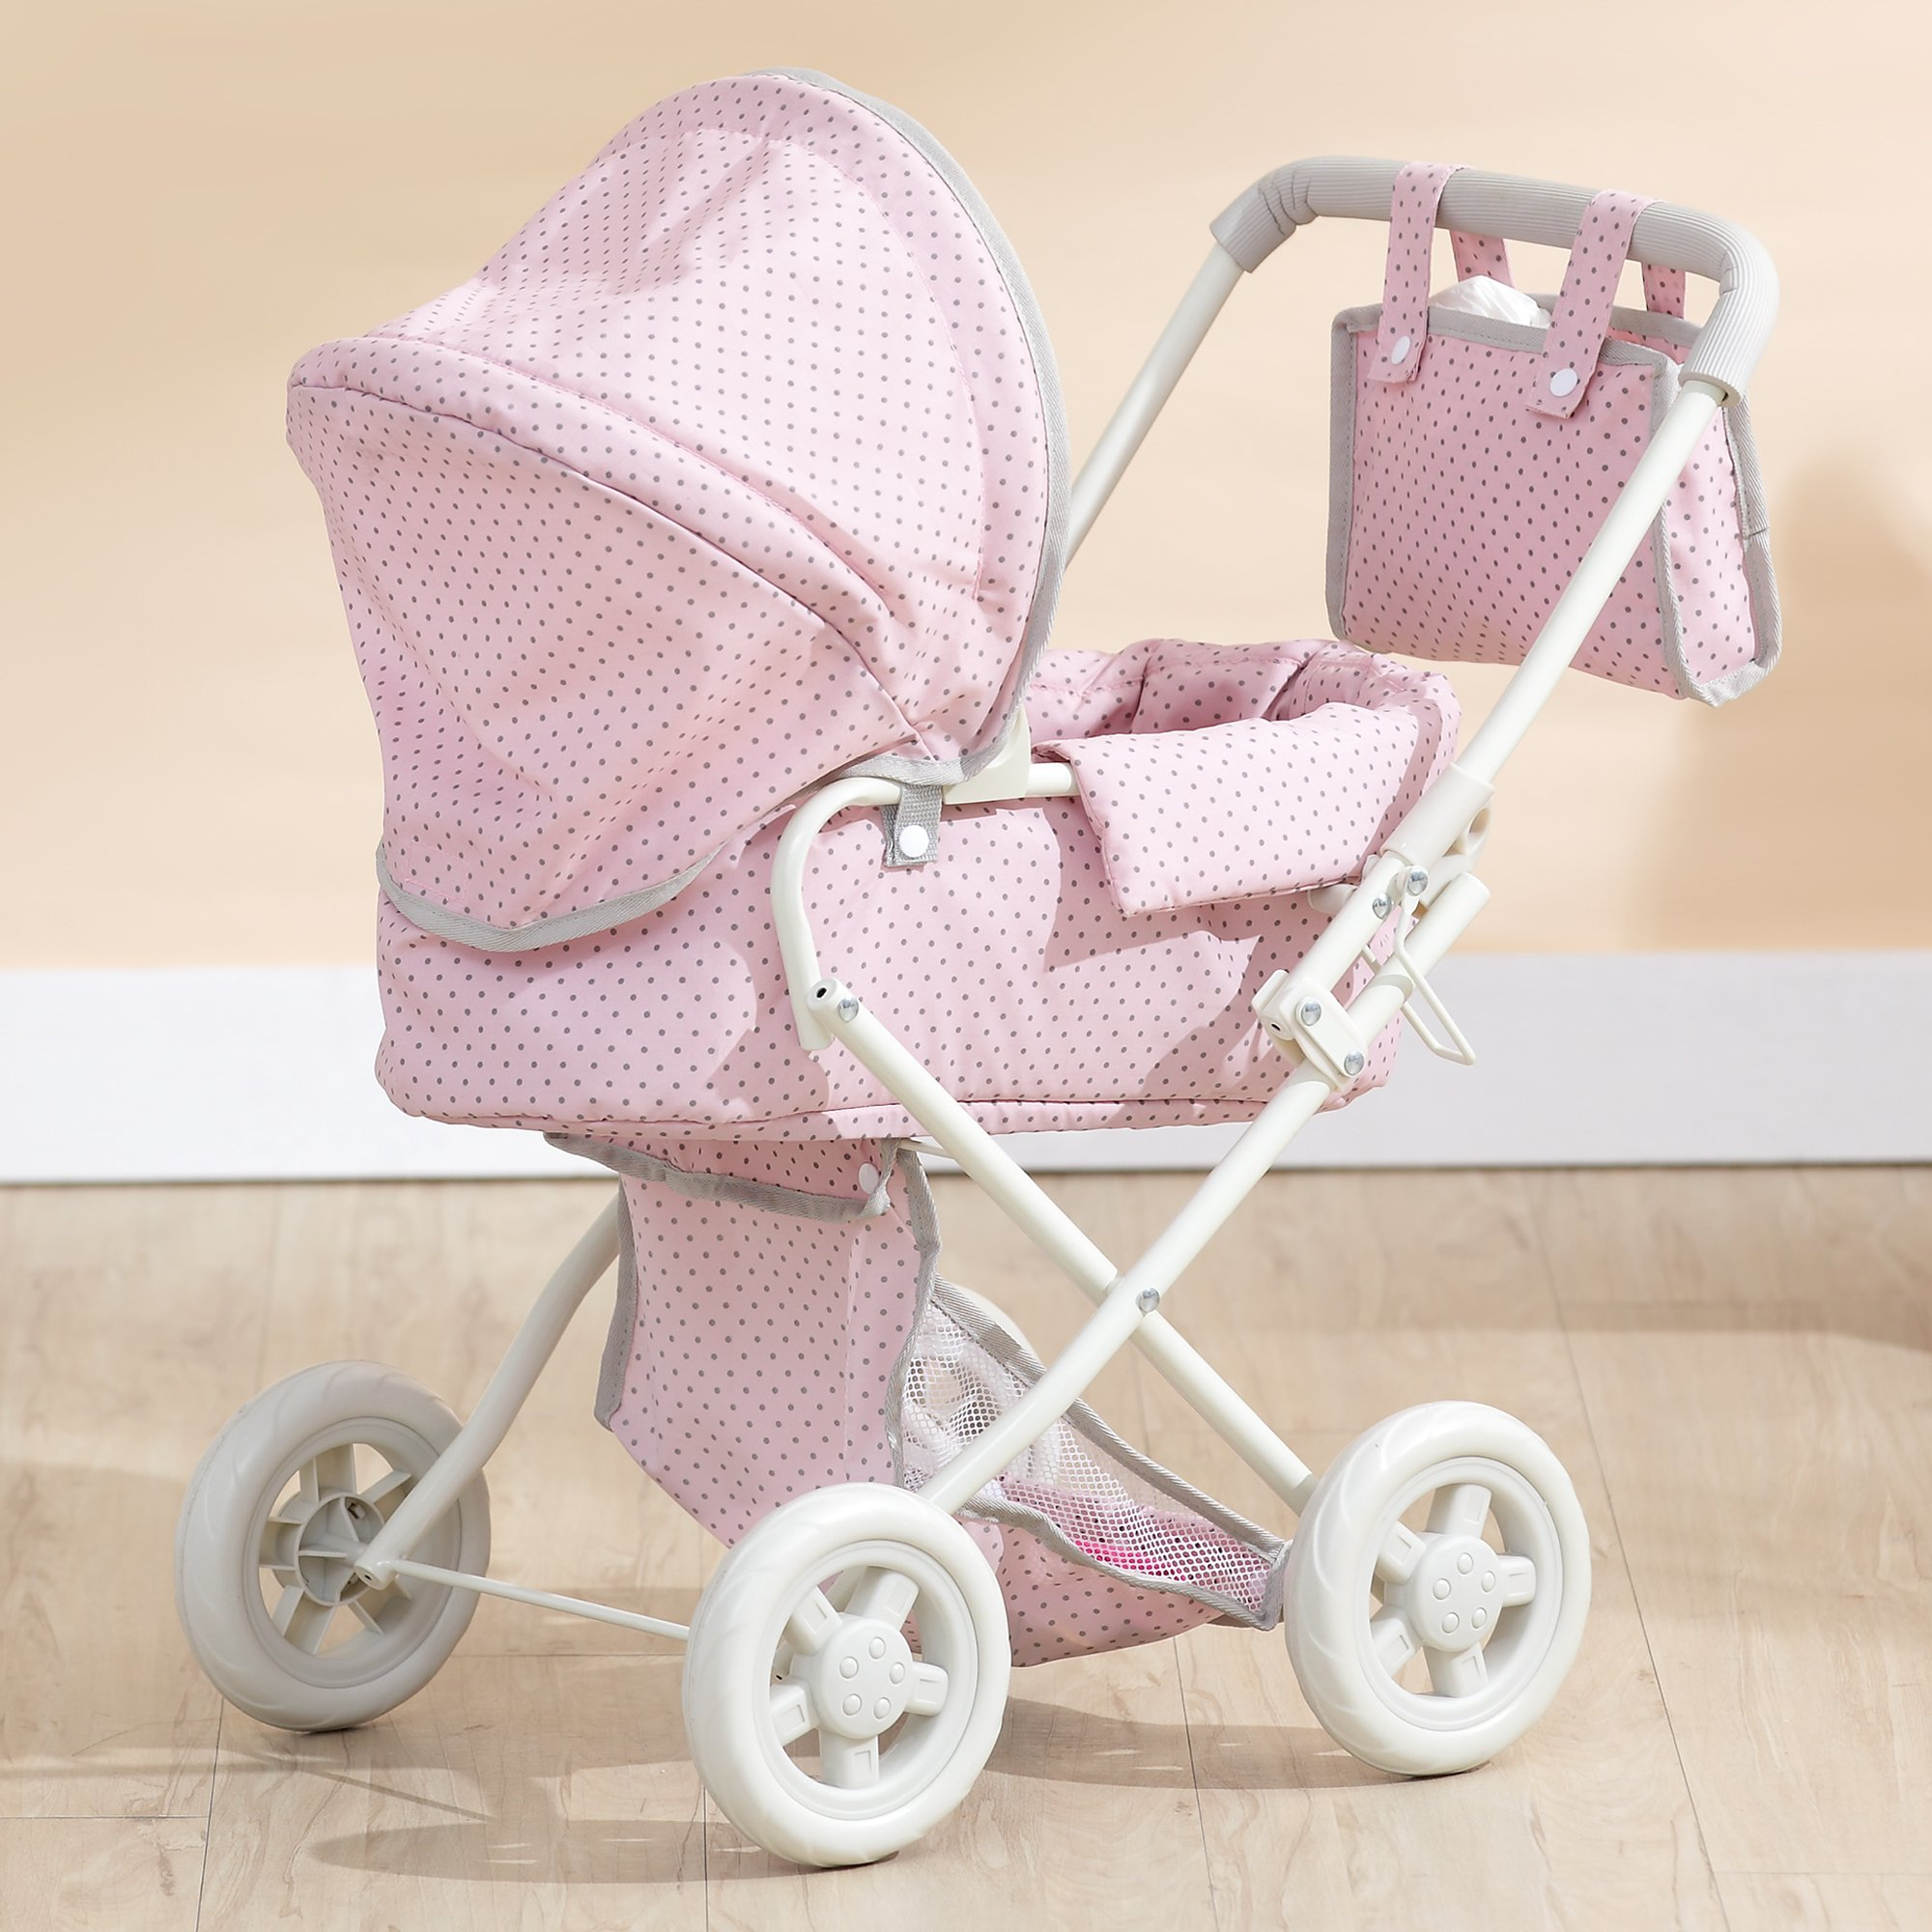 Olivia's Little World - Polka Dots Princess Baby Doll Deluxe Stroller - My First Baby Doll Foldable Stroller with Easy Removable Bassinet & Basket for Doll Accessories - Pink & Gray